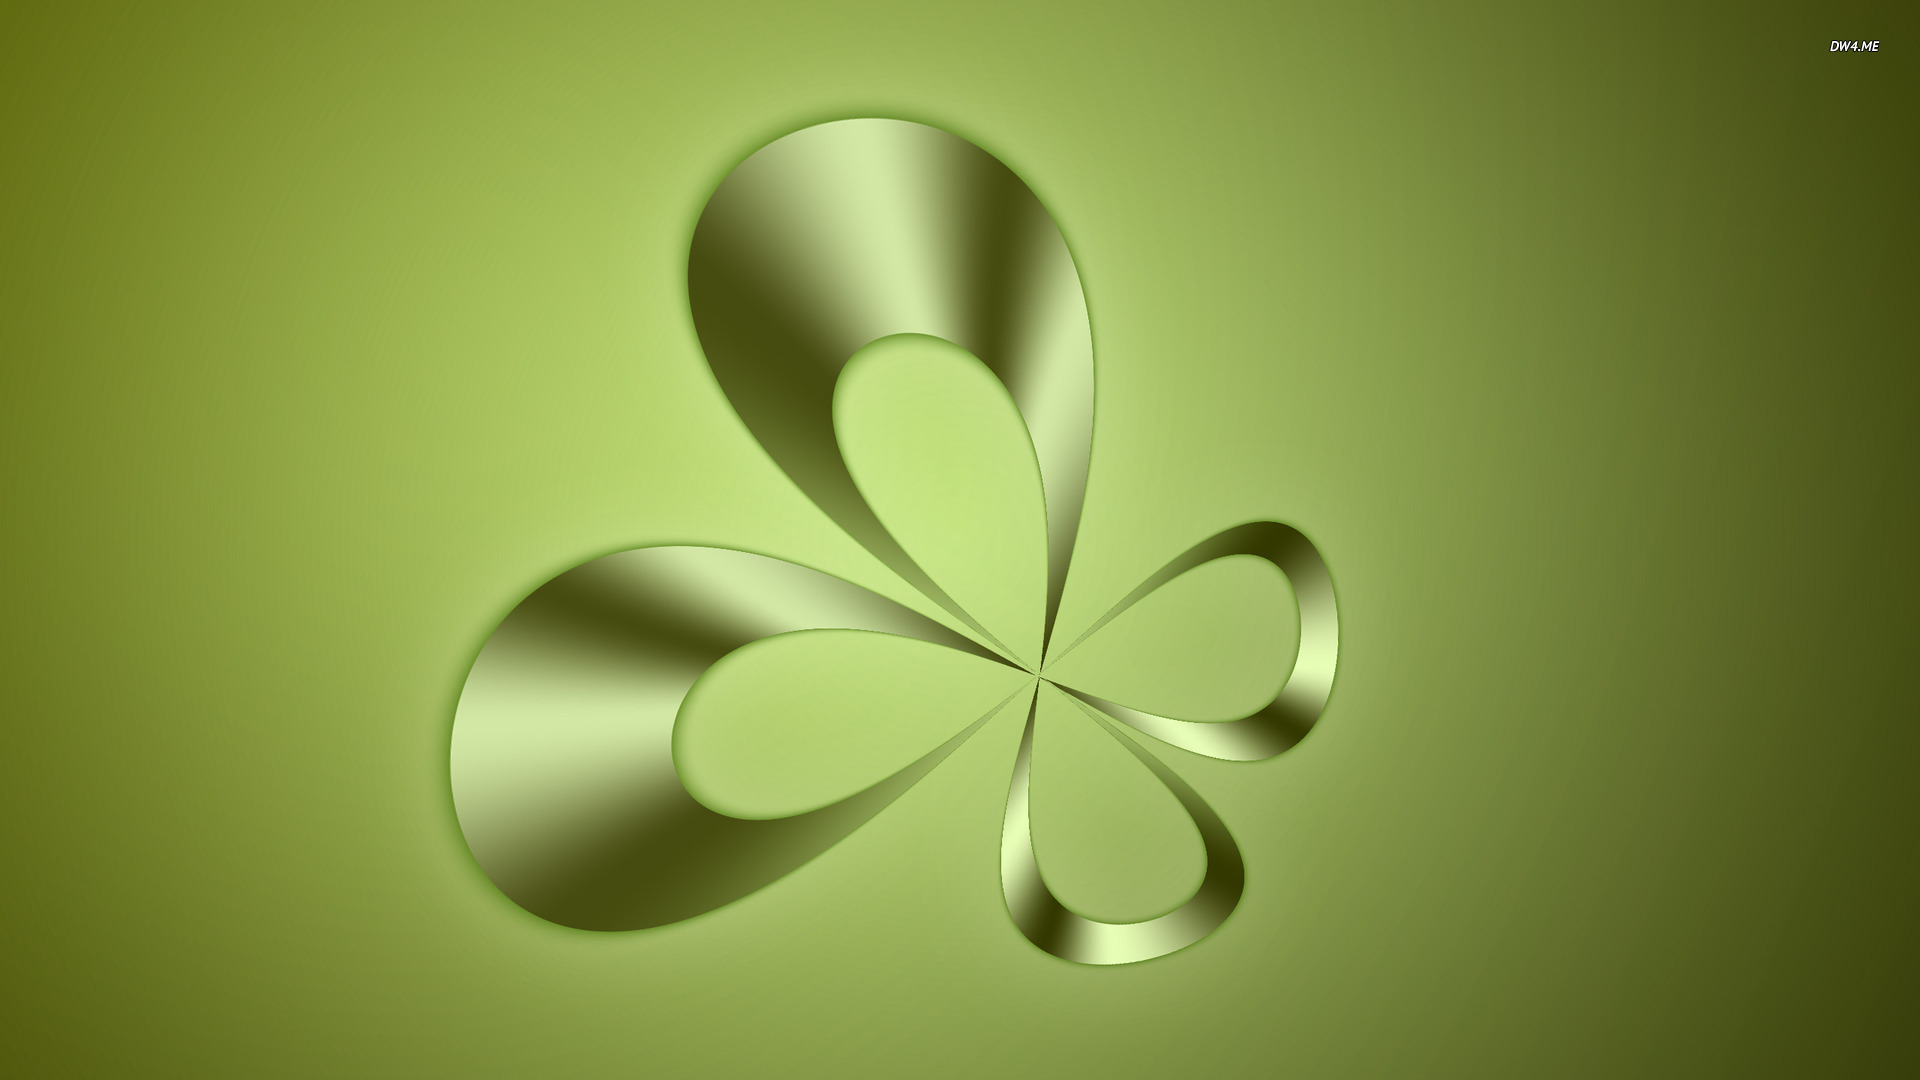 Four leaf clover wallpaper   Digital Art wallpapers   510 1920x1080